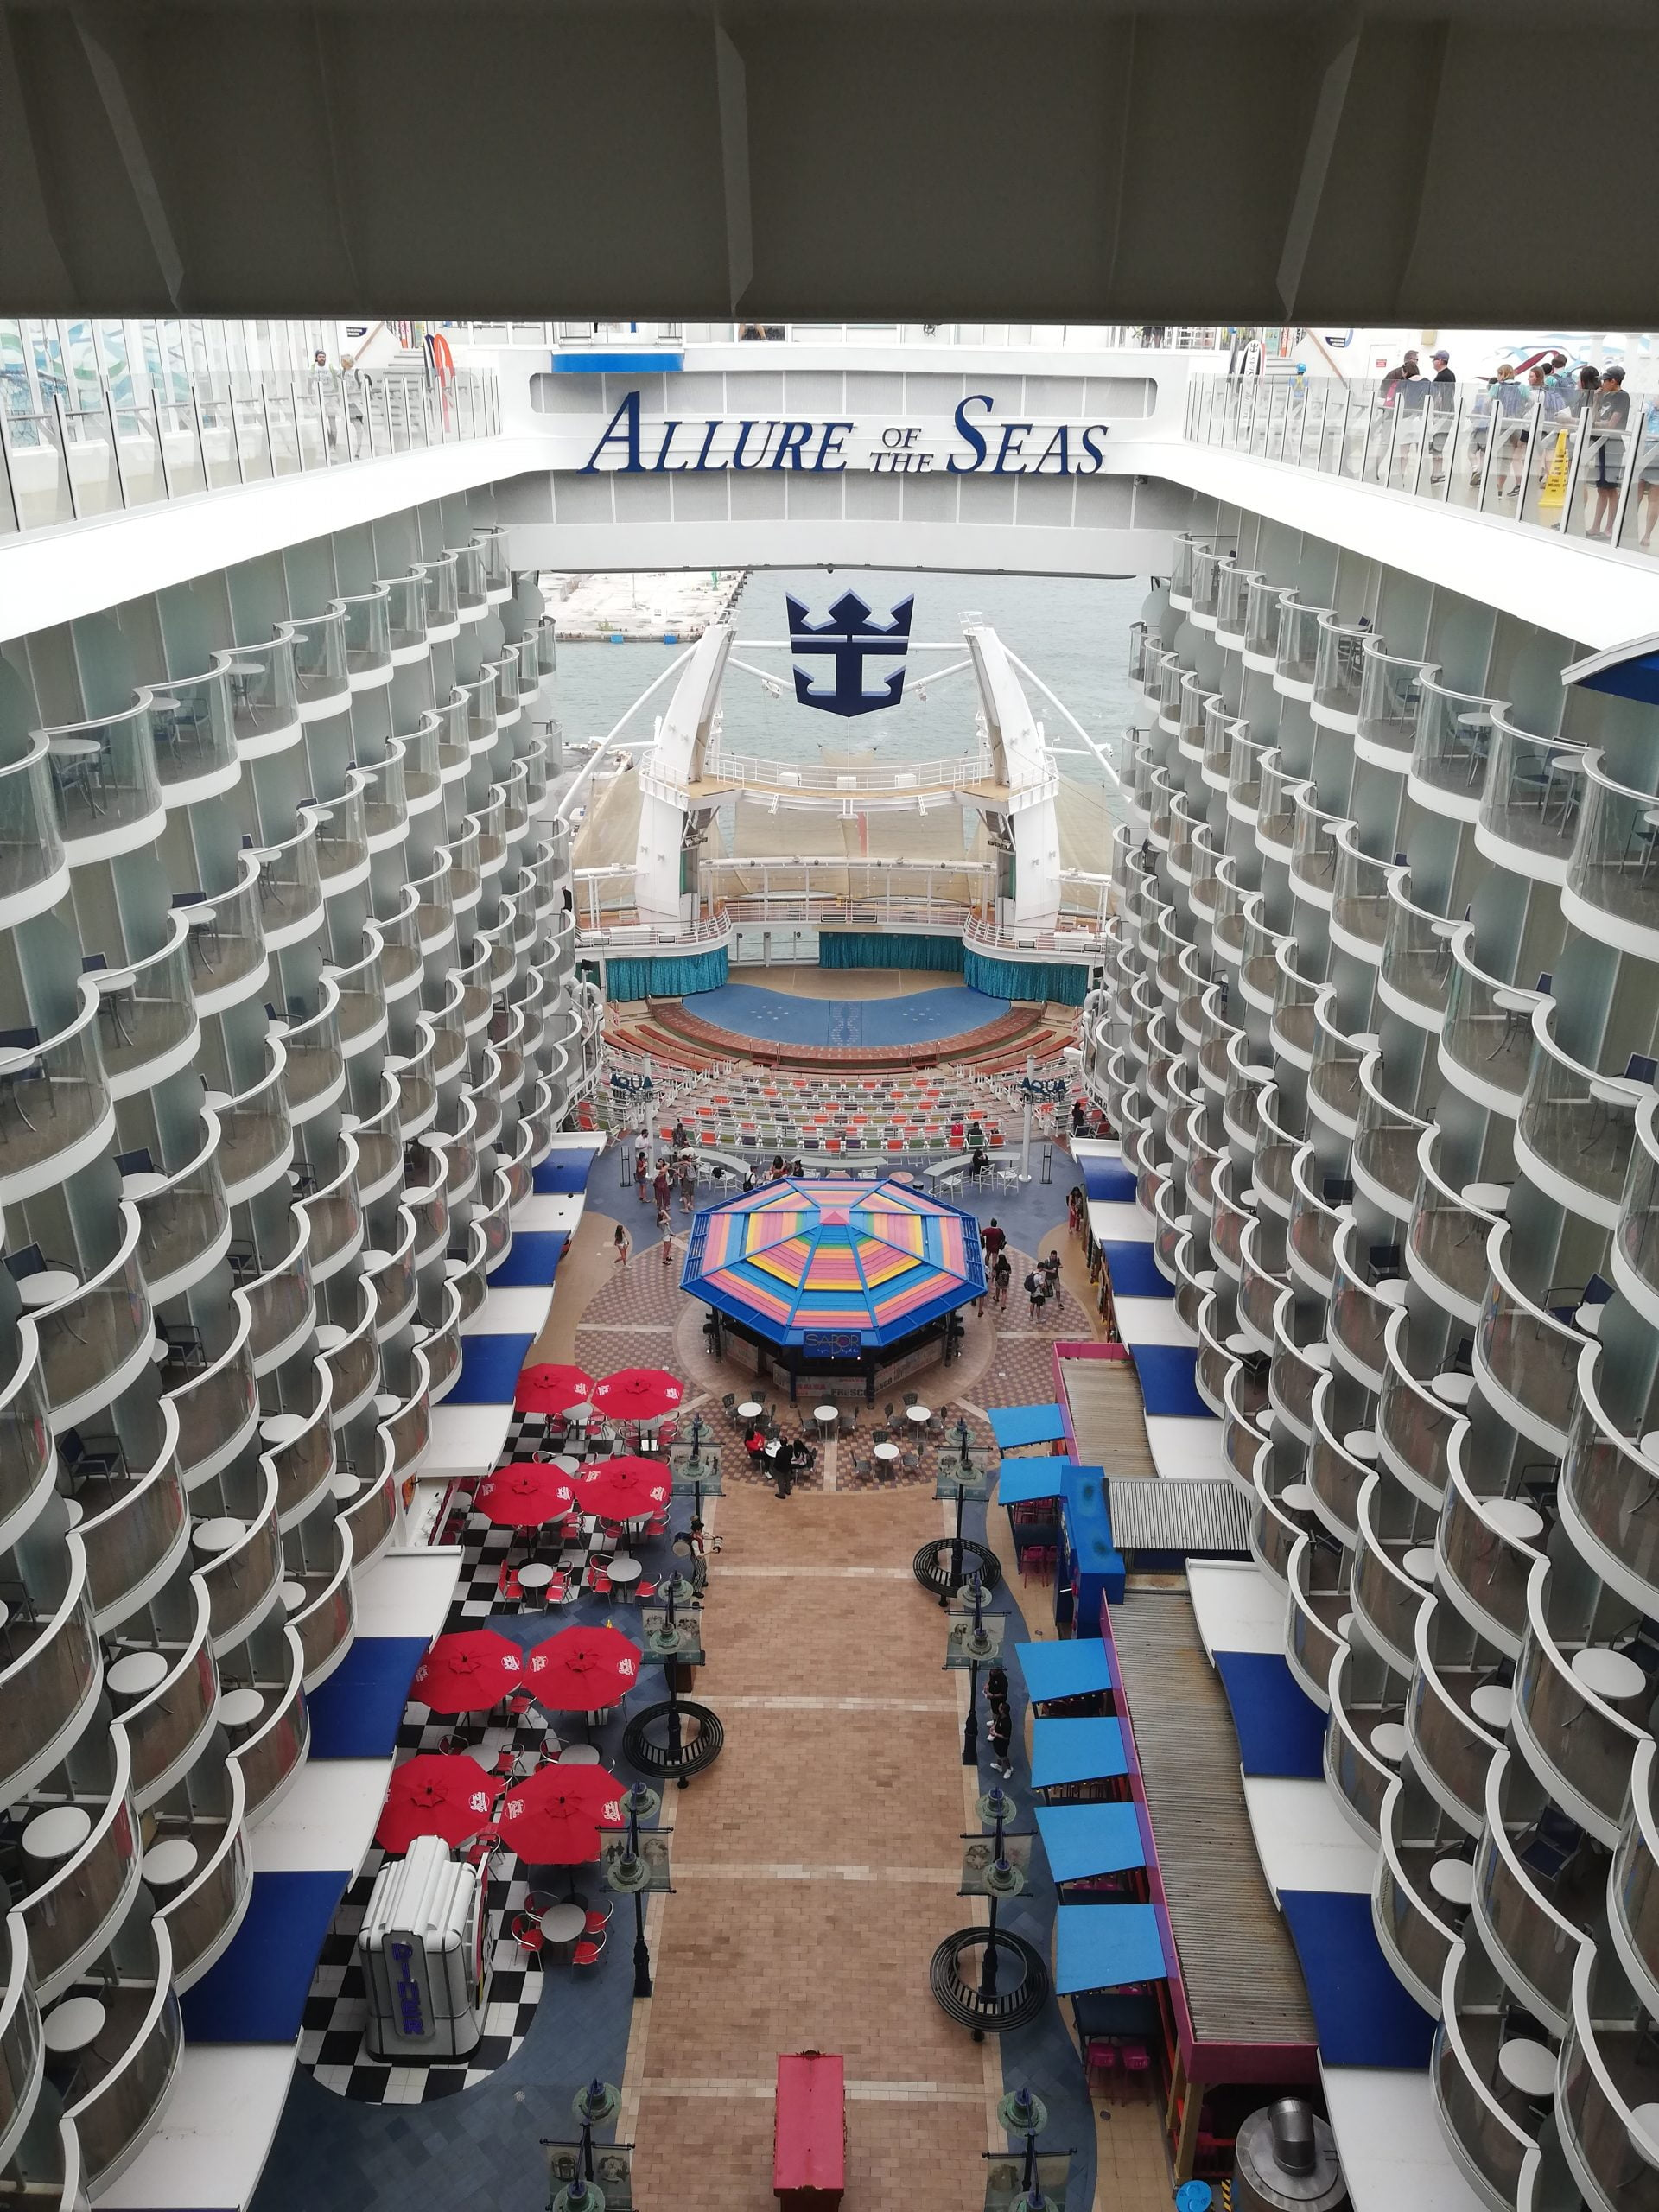 ALLURE OF THE SEAS BOARDWALK